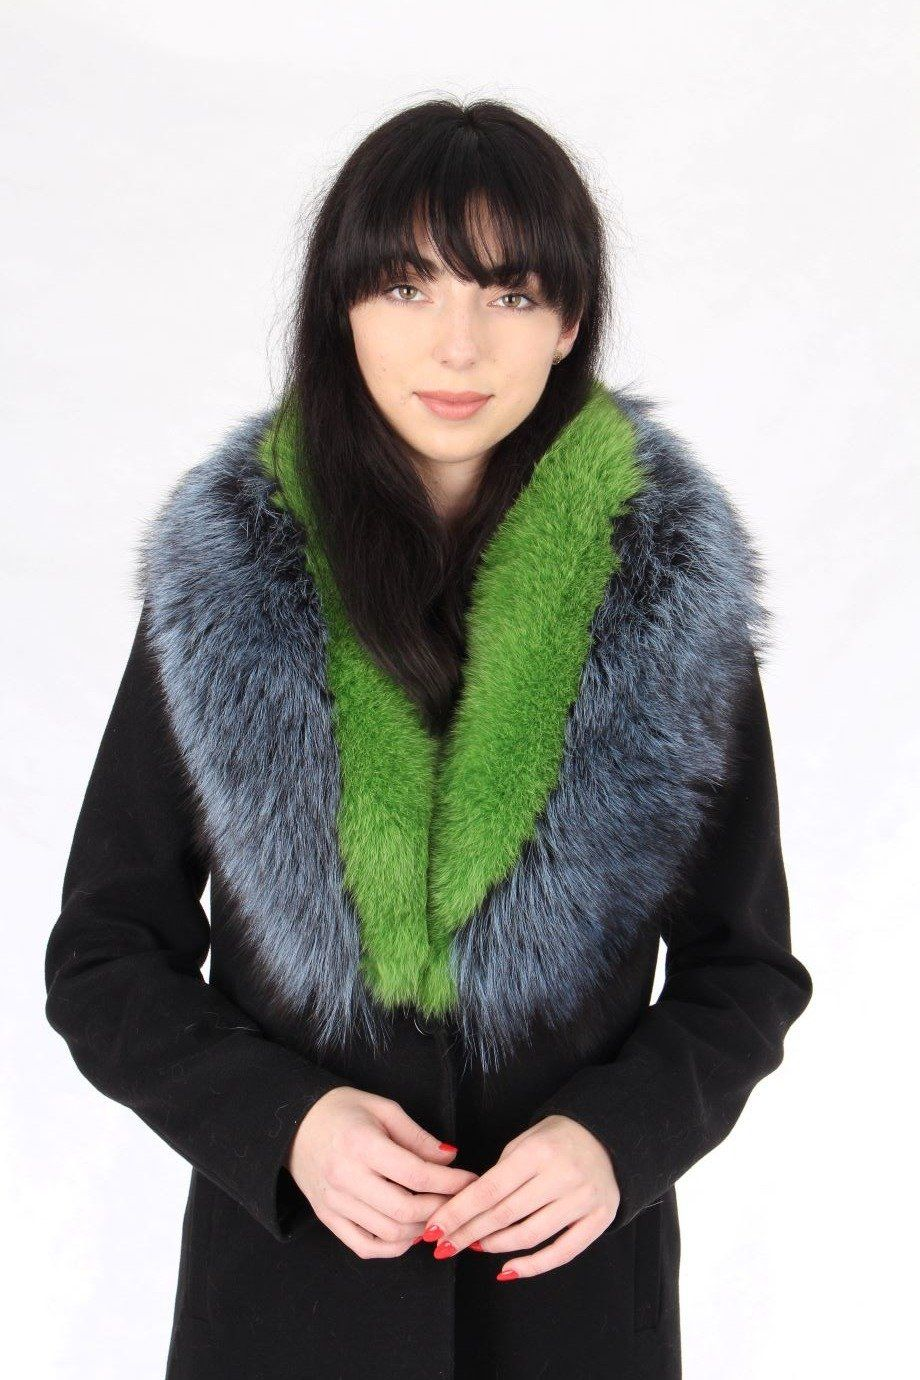 Futra Naturalne Glare Furs Best Instagram Profiles Style Fashion